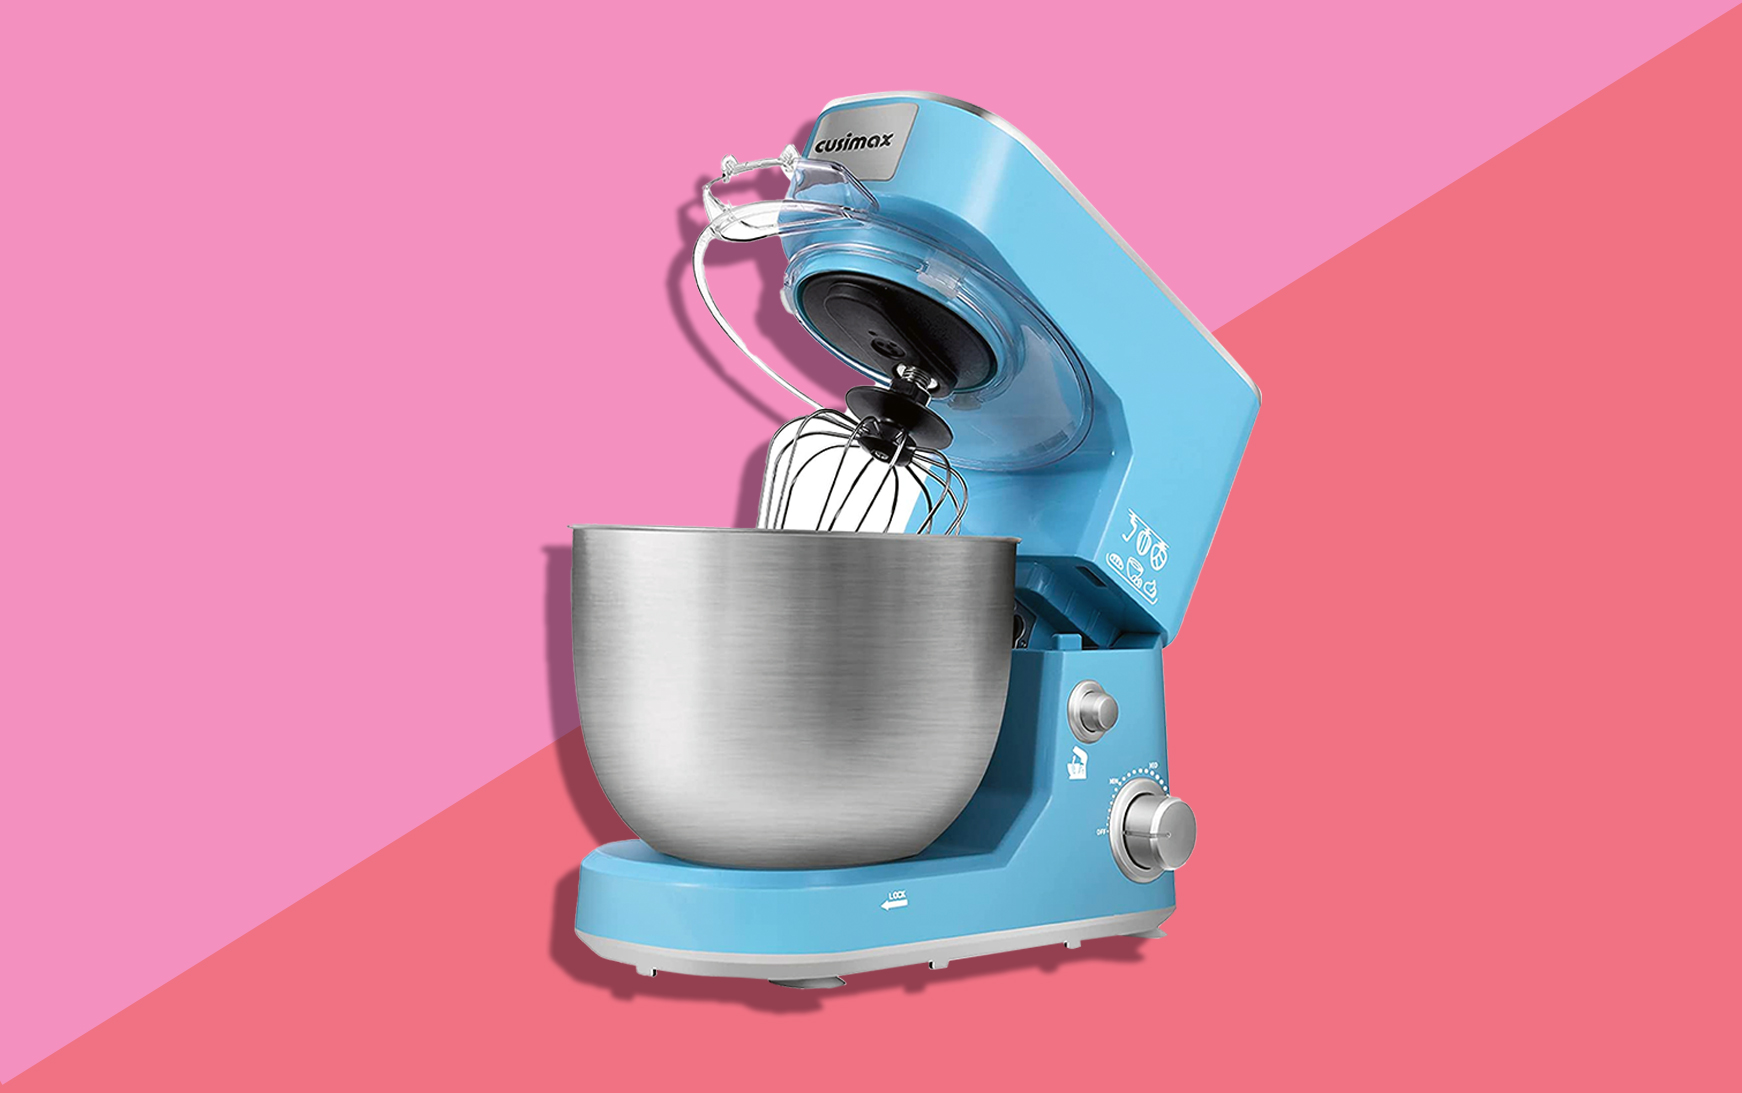 blue cusimax stand mixer on pink background